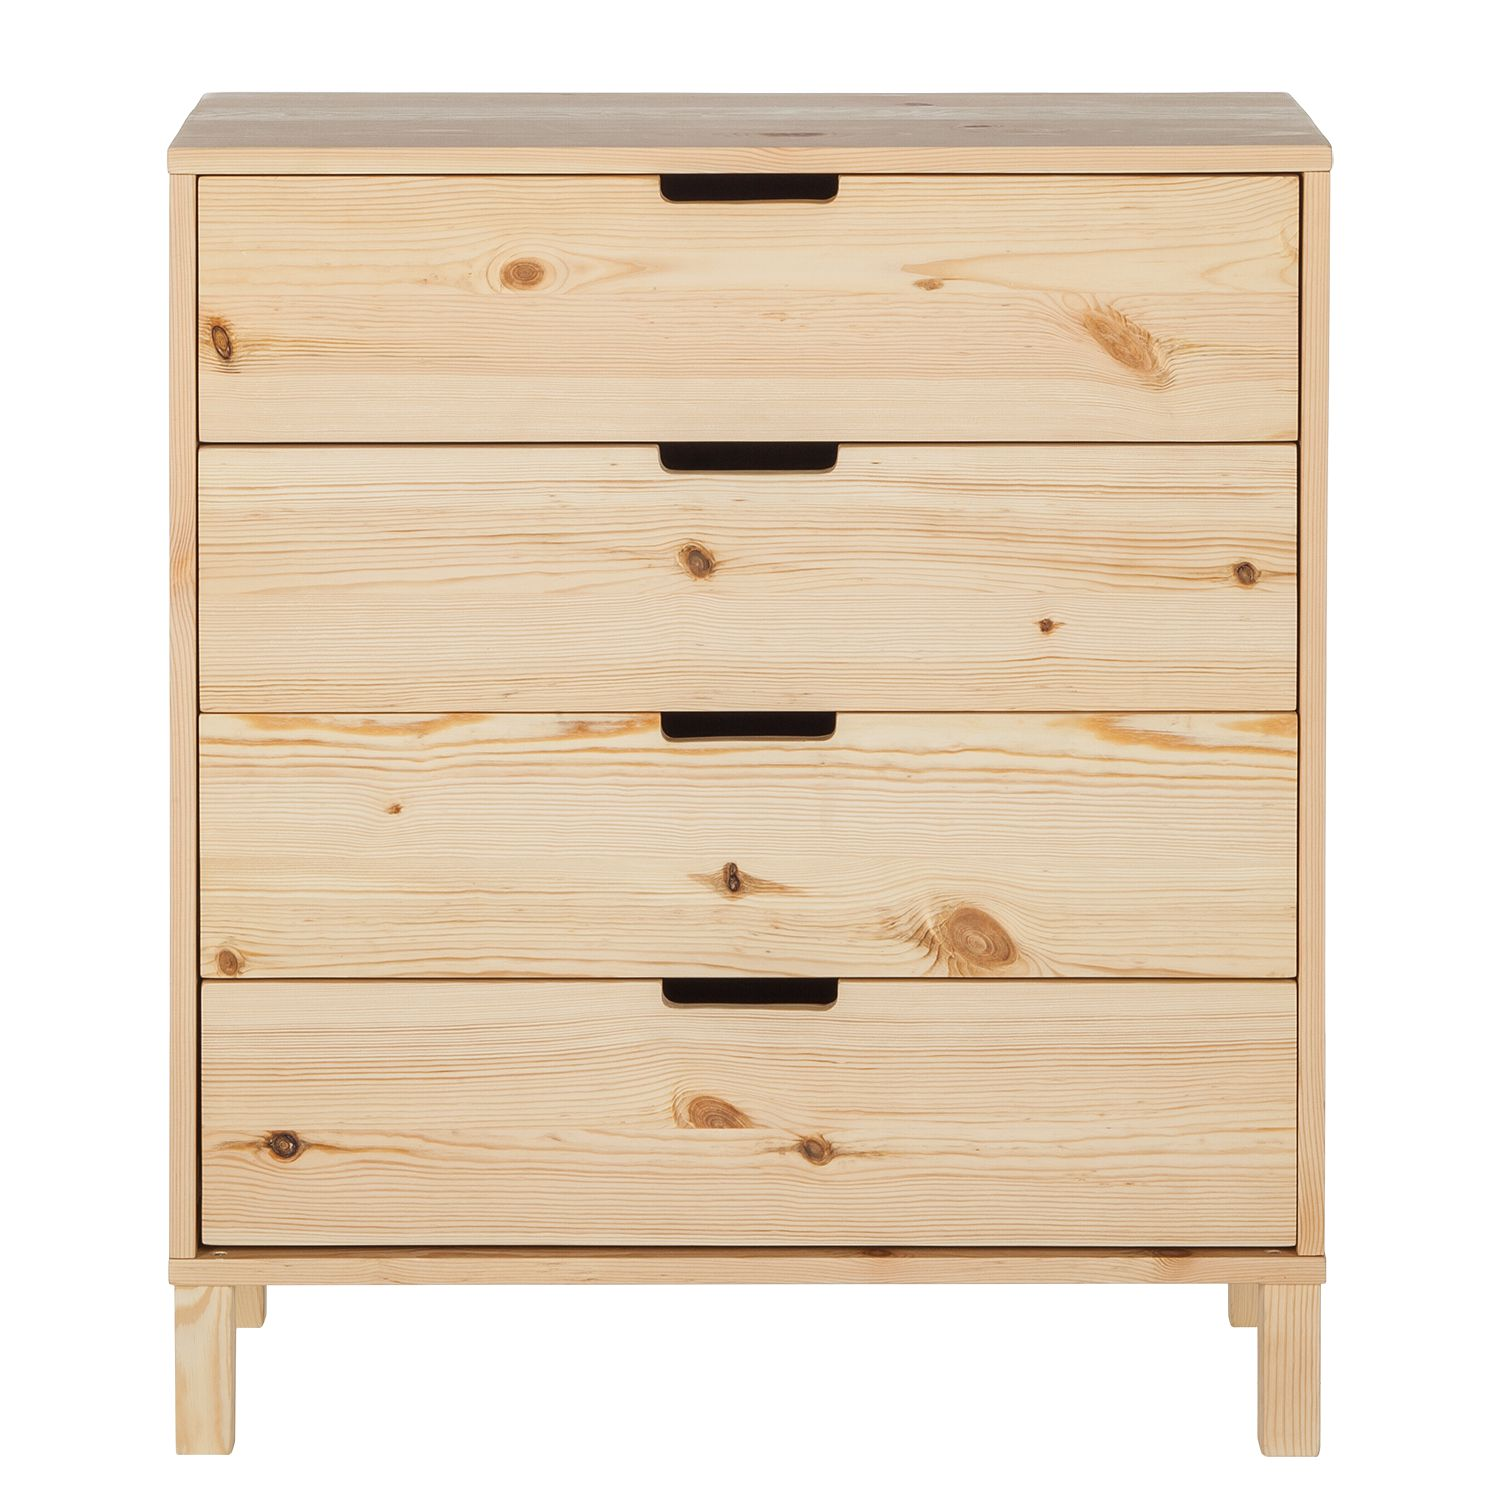 kommode wood kiefer massiv braun sideboard schrank highboard anrichte. Black Bedroom Furniture Sets. Home Design Ideas